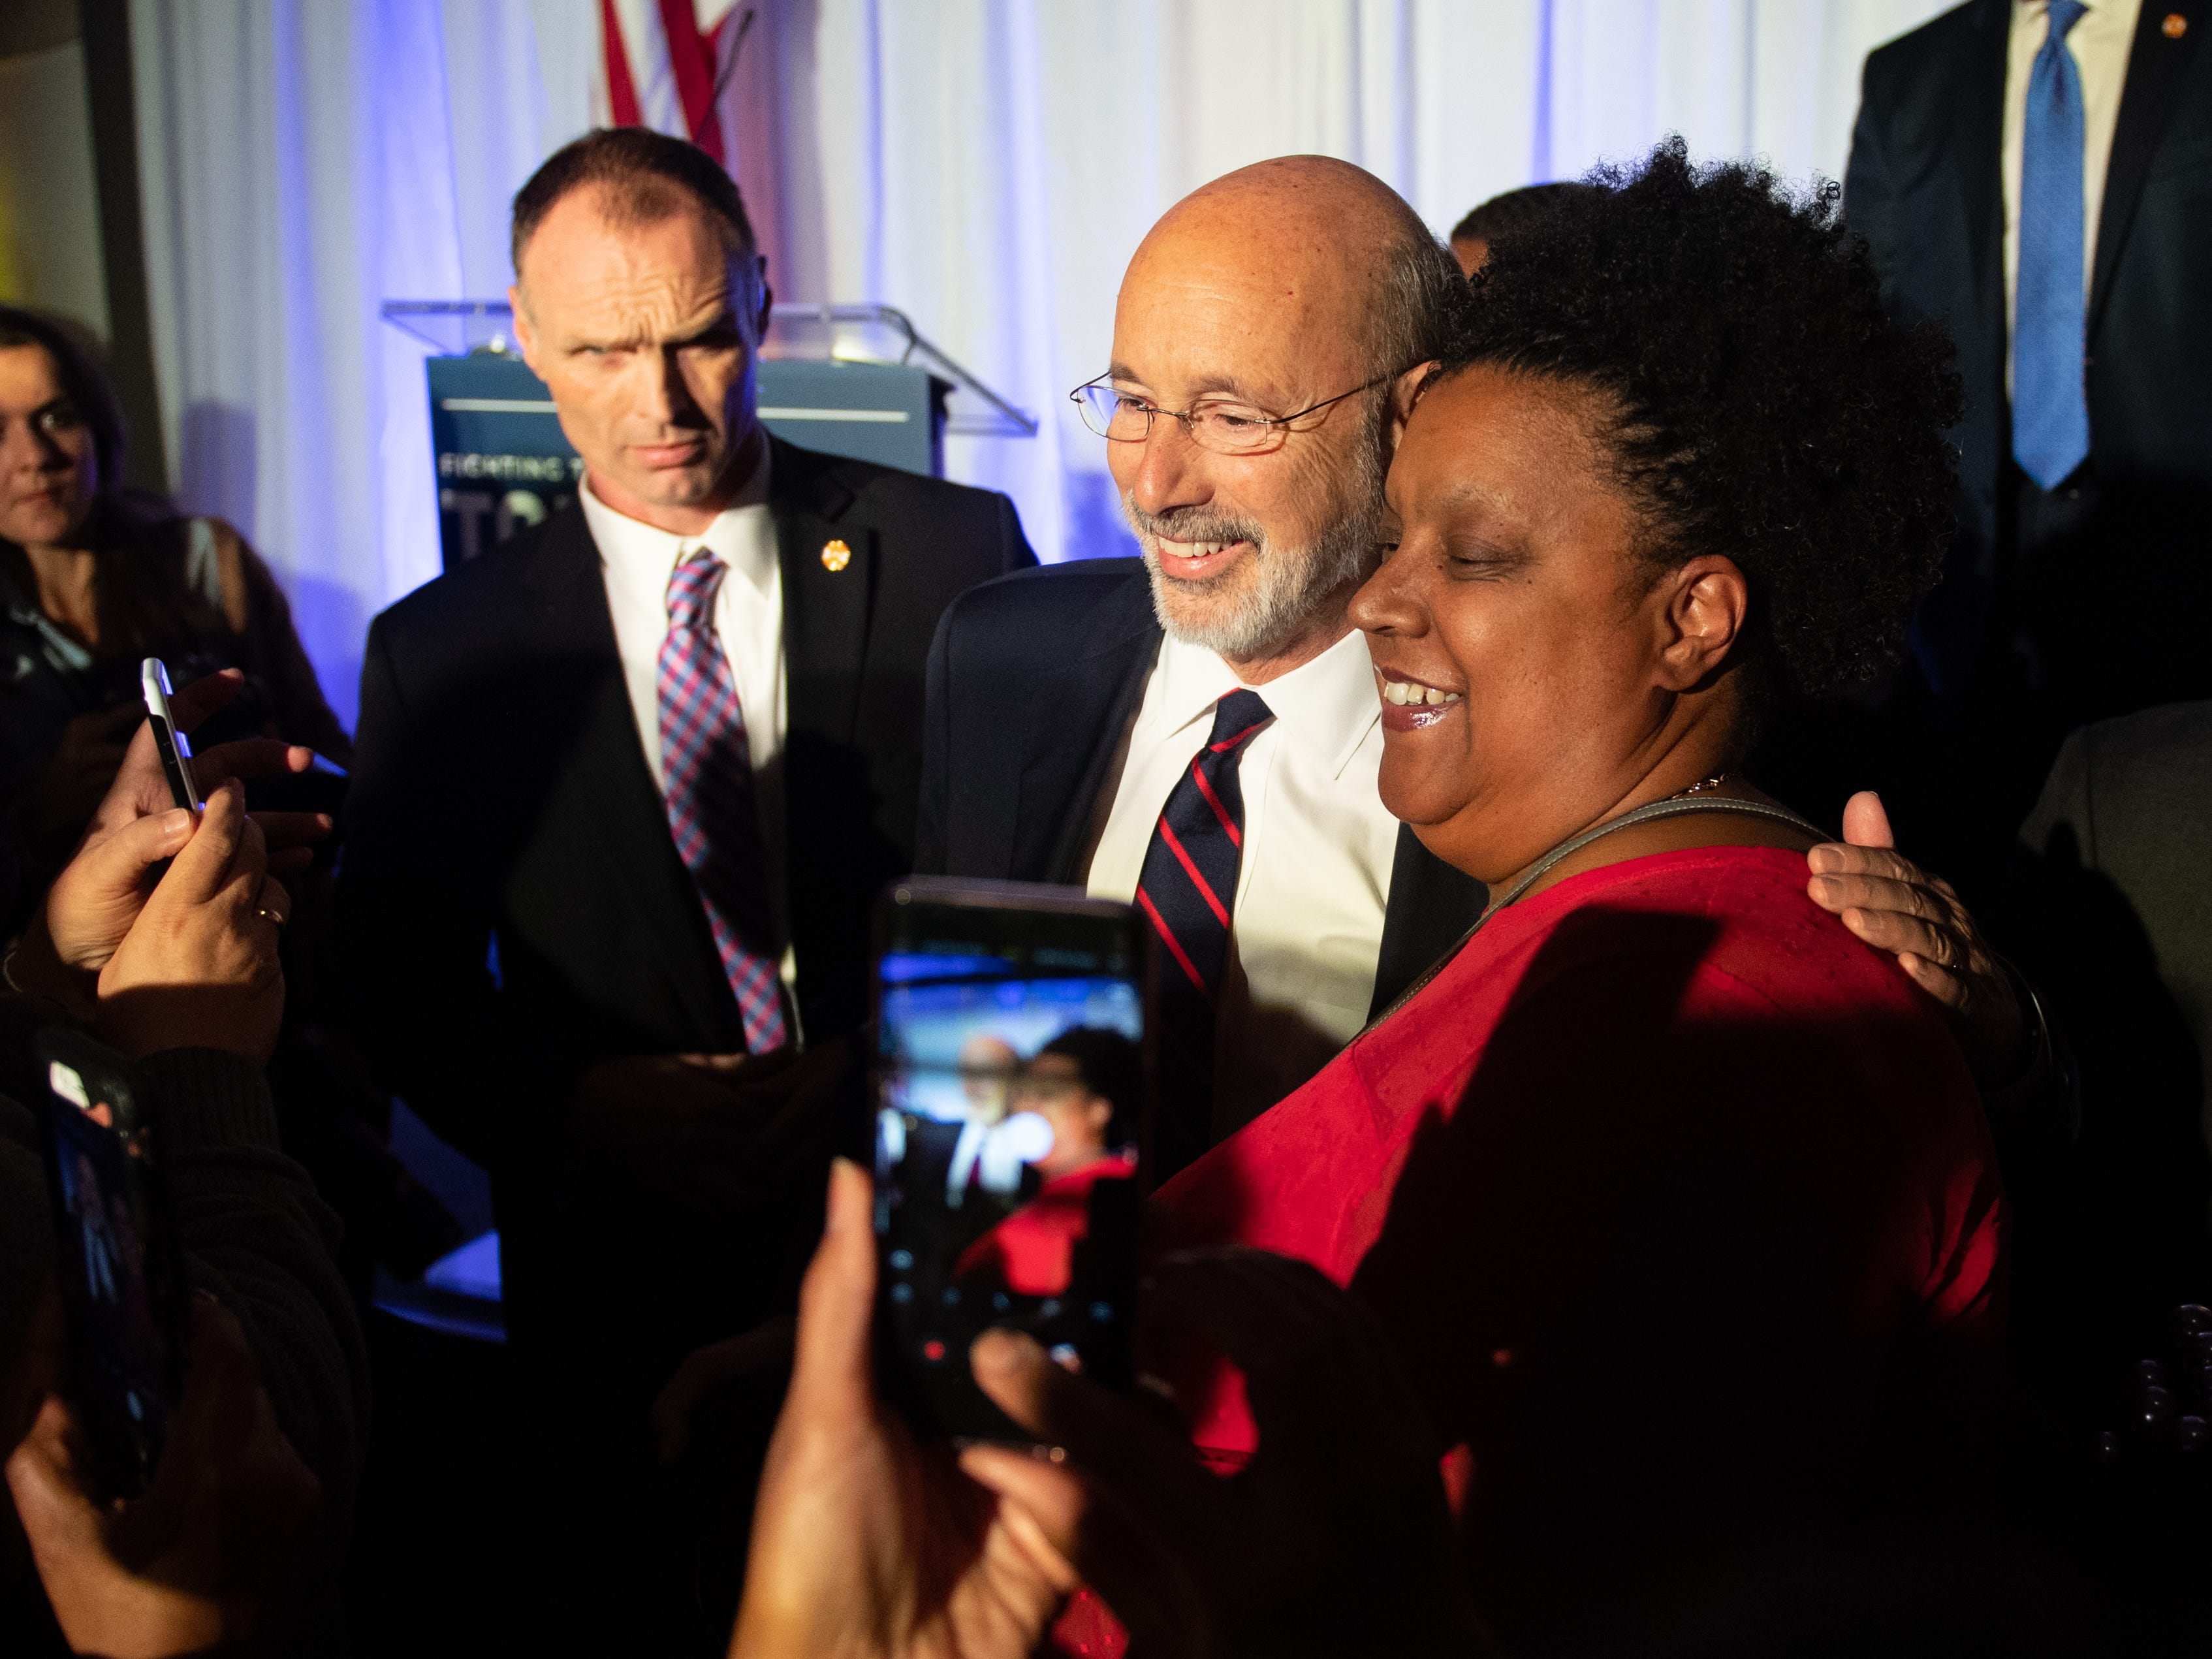 Supporters stand in line to get a picture with the newly re-elected governor on election night. Tom Wolf, center, defeated Scott Wagner for a second term.